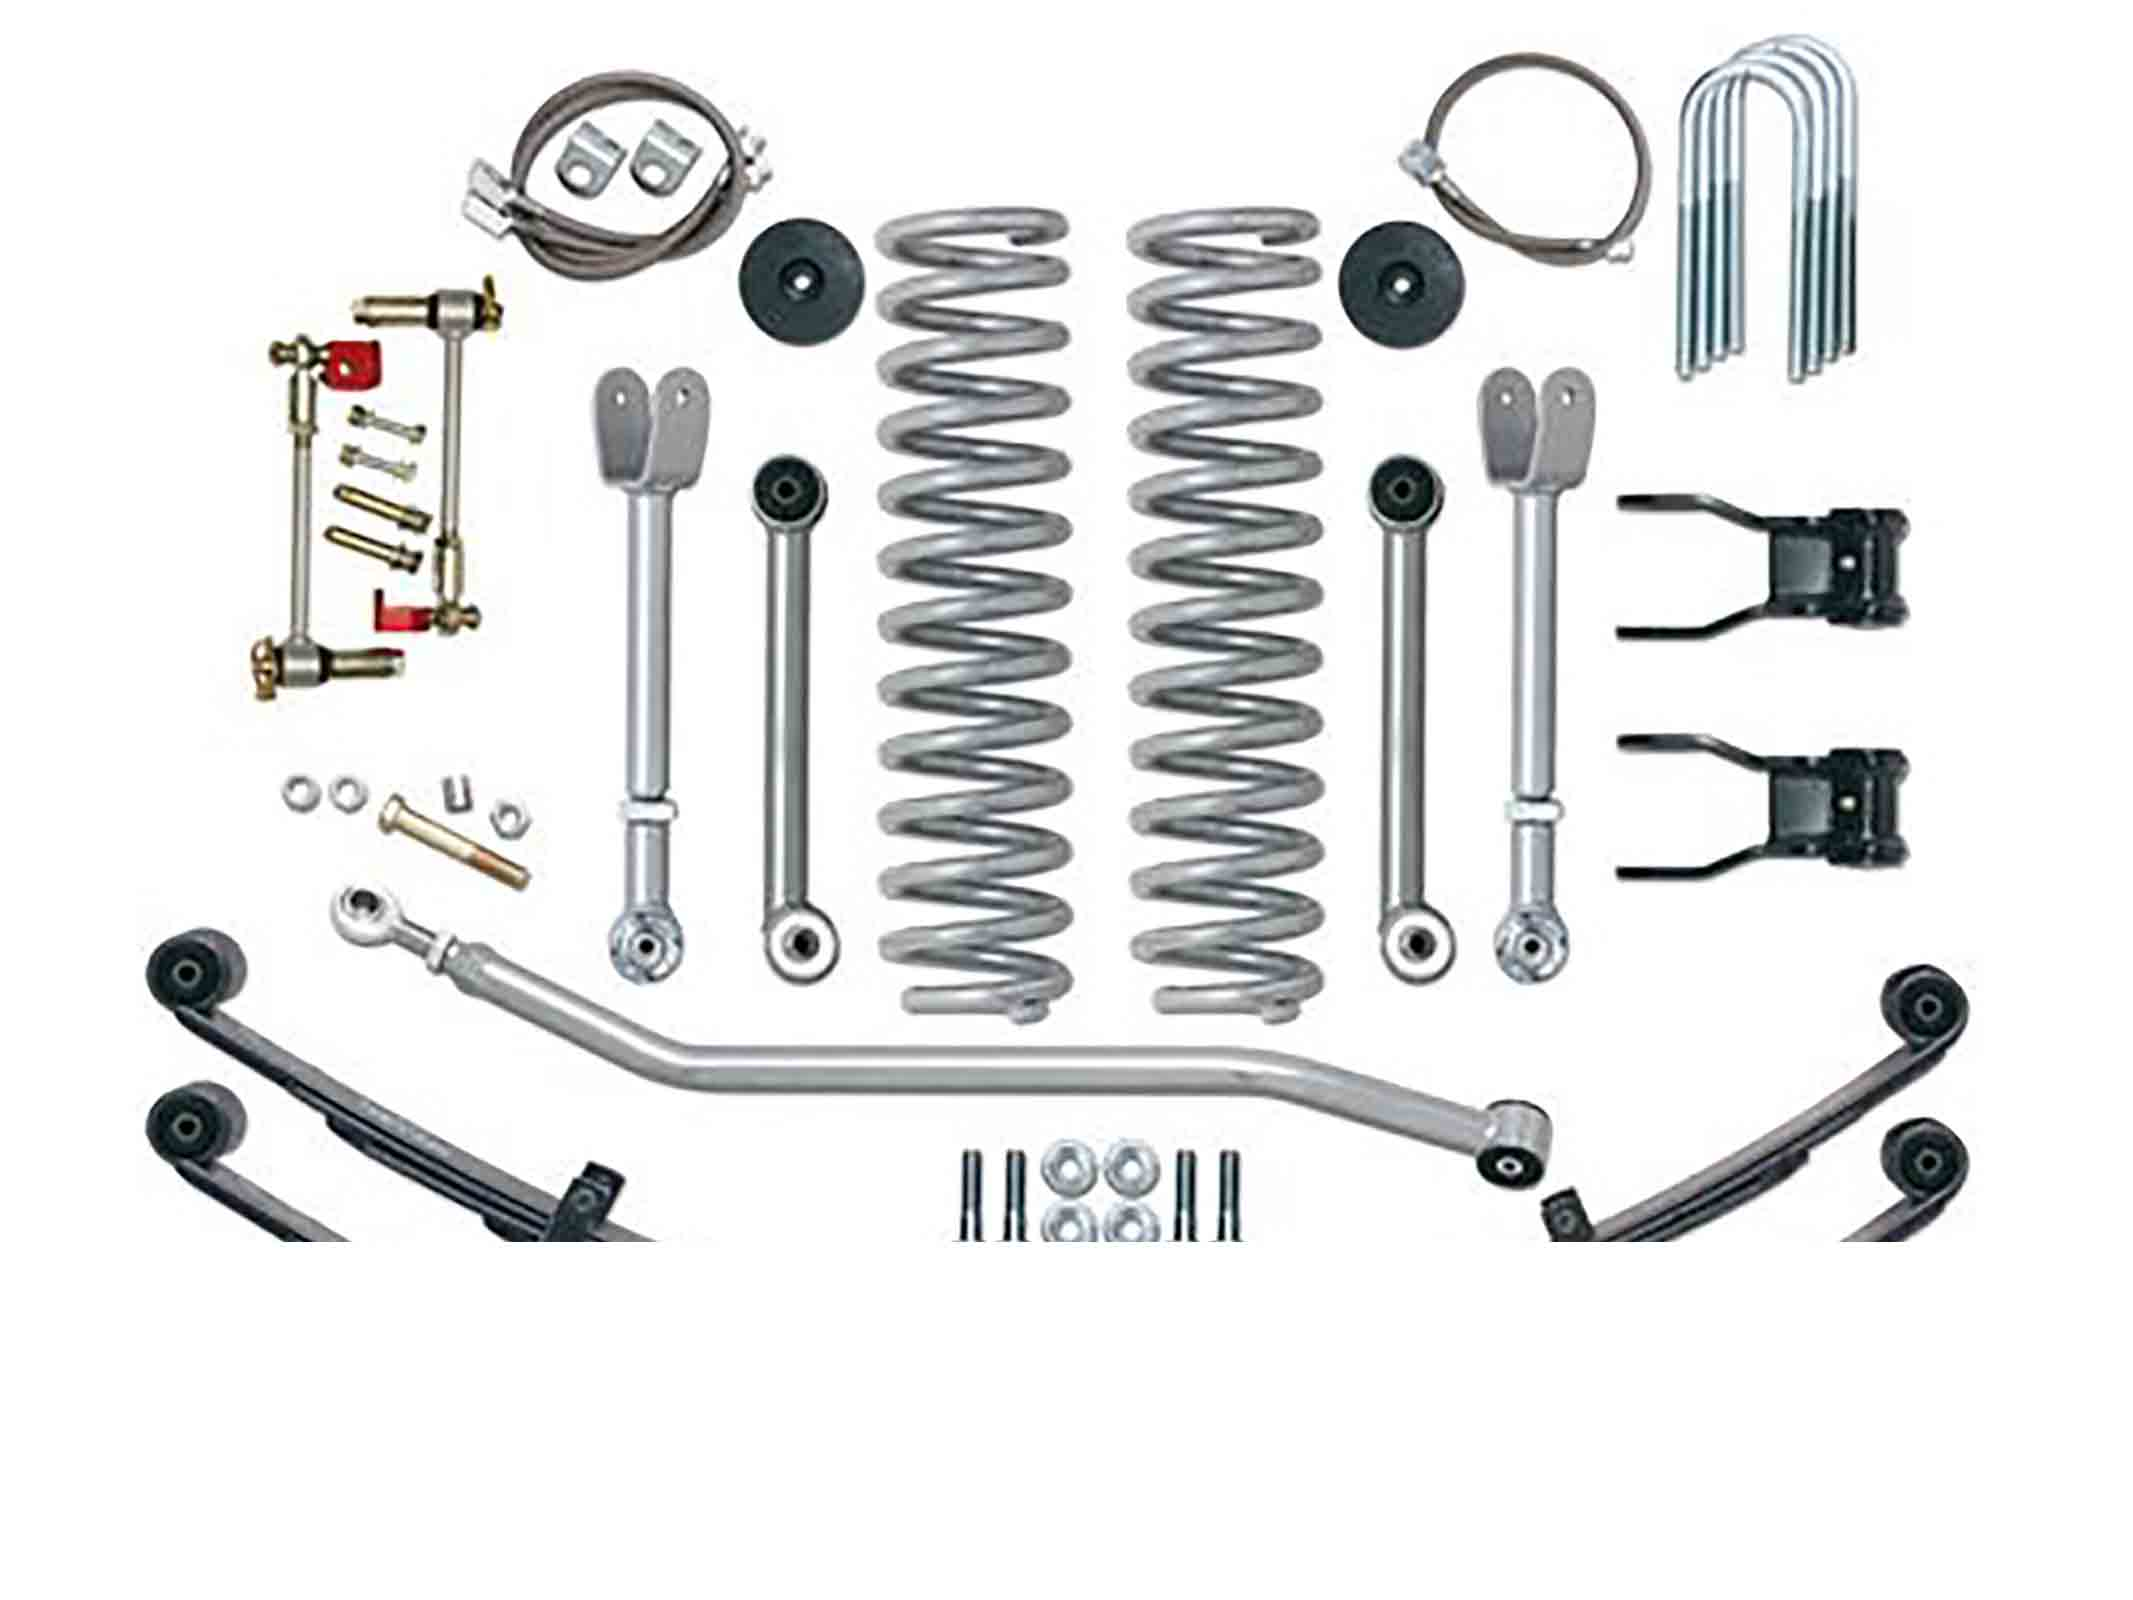 Super flex short arm kit cherokee xj 84 01  + 4,5 = 114mm ricambi jeep